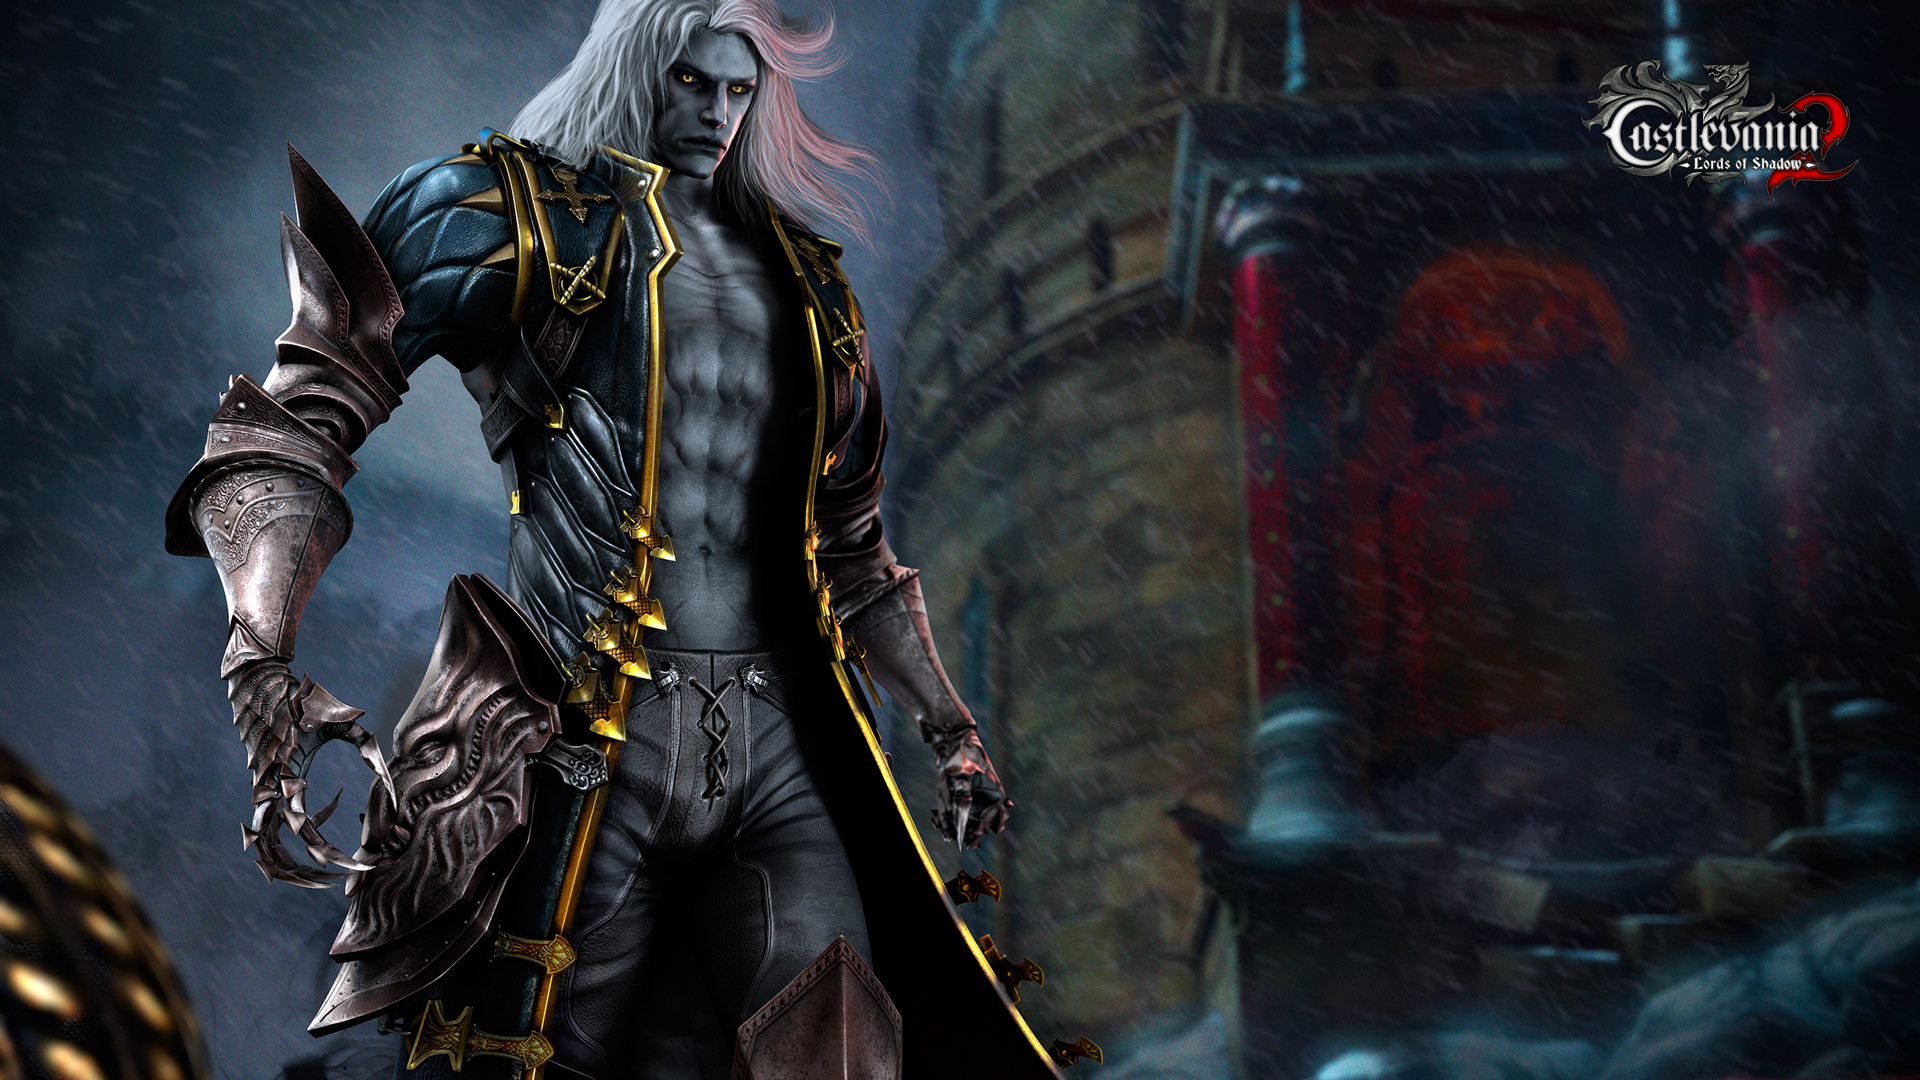 Res: 1920x1080, Castlevania Lords of Shadows 2 Wallpaper 9